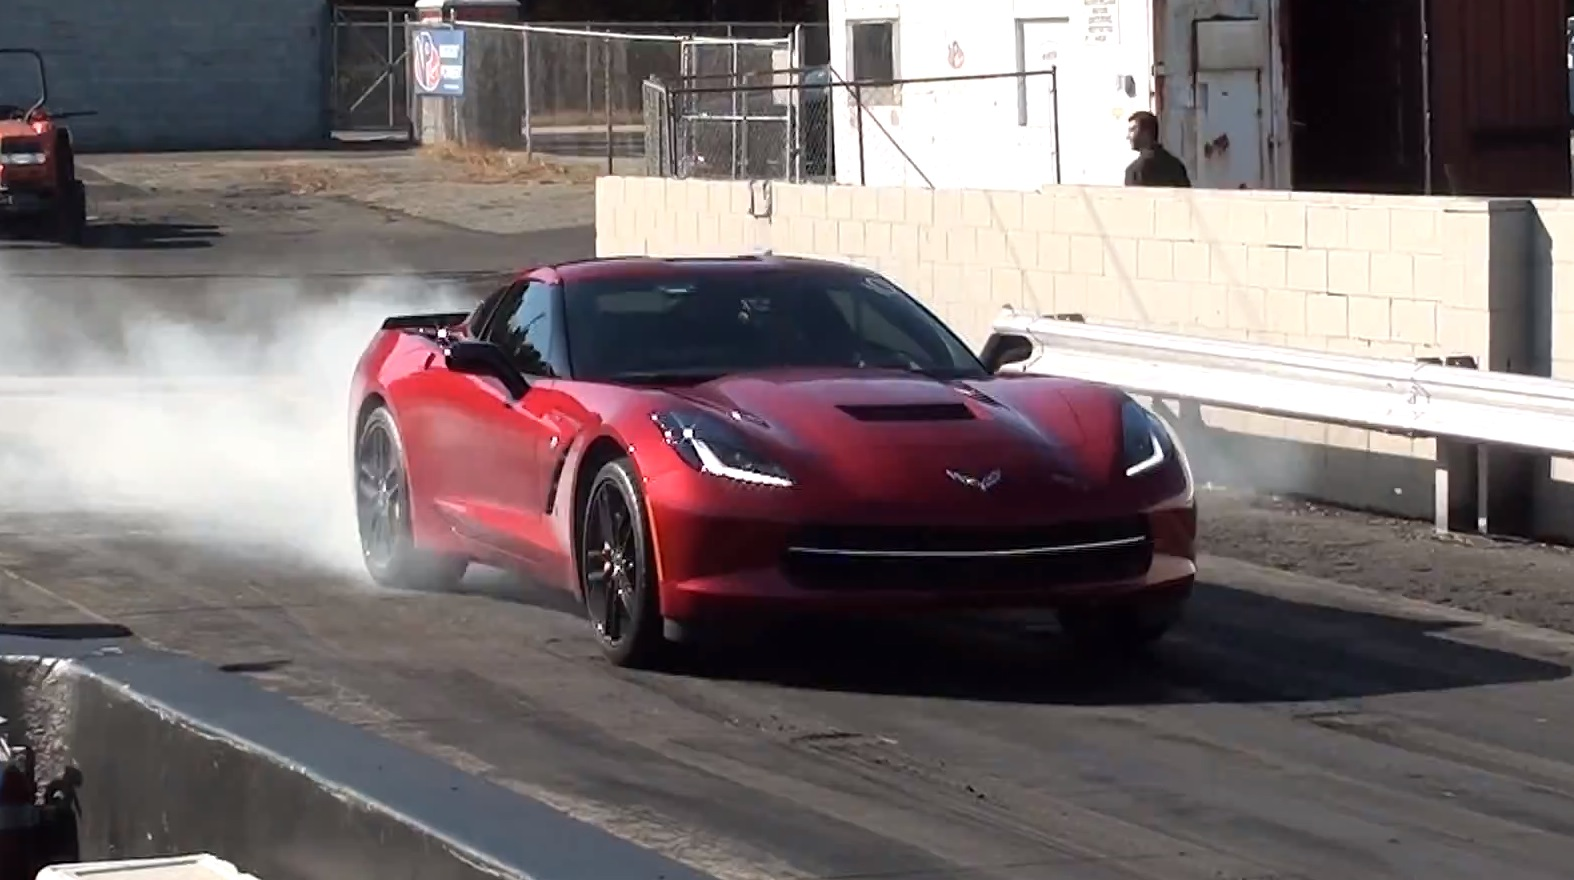 Stock 2017 Chevrolet Corvette Stingray C7 Automatic Runs 11 6 119 Mph In The 1 4 Mile